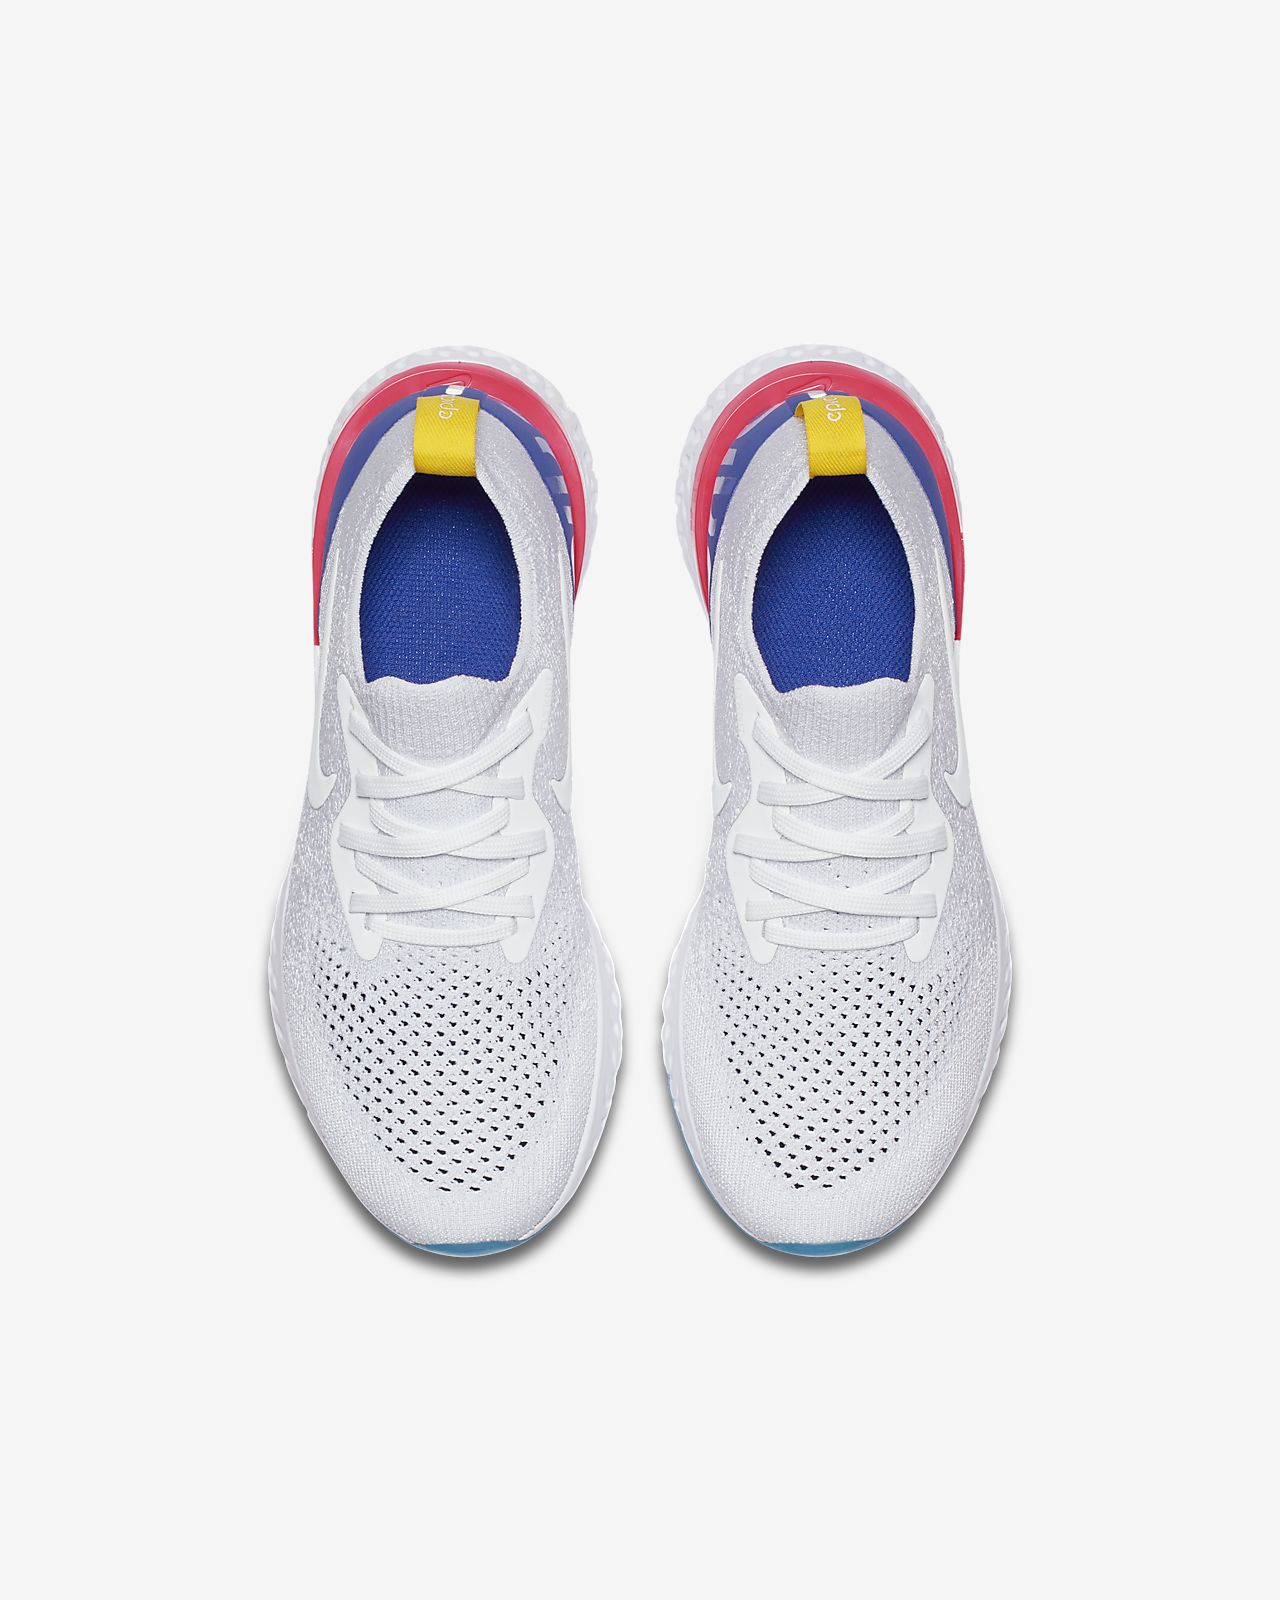 new product da062 4915e usa nike epic react flyknit older kids running shoe 6e2cb 2b1fc